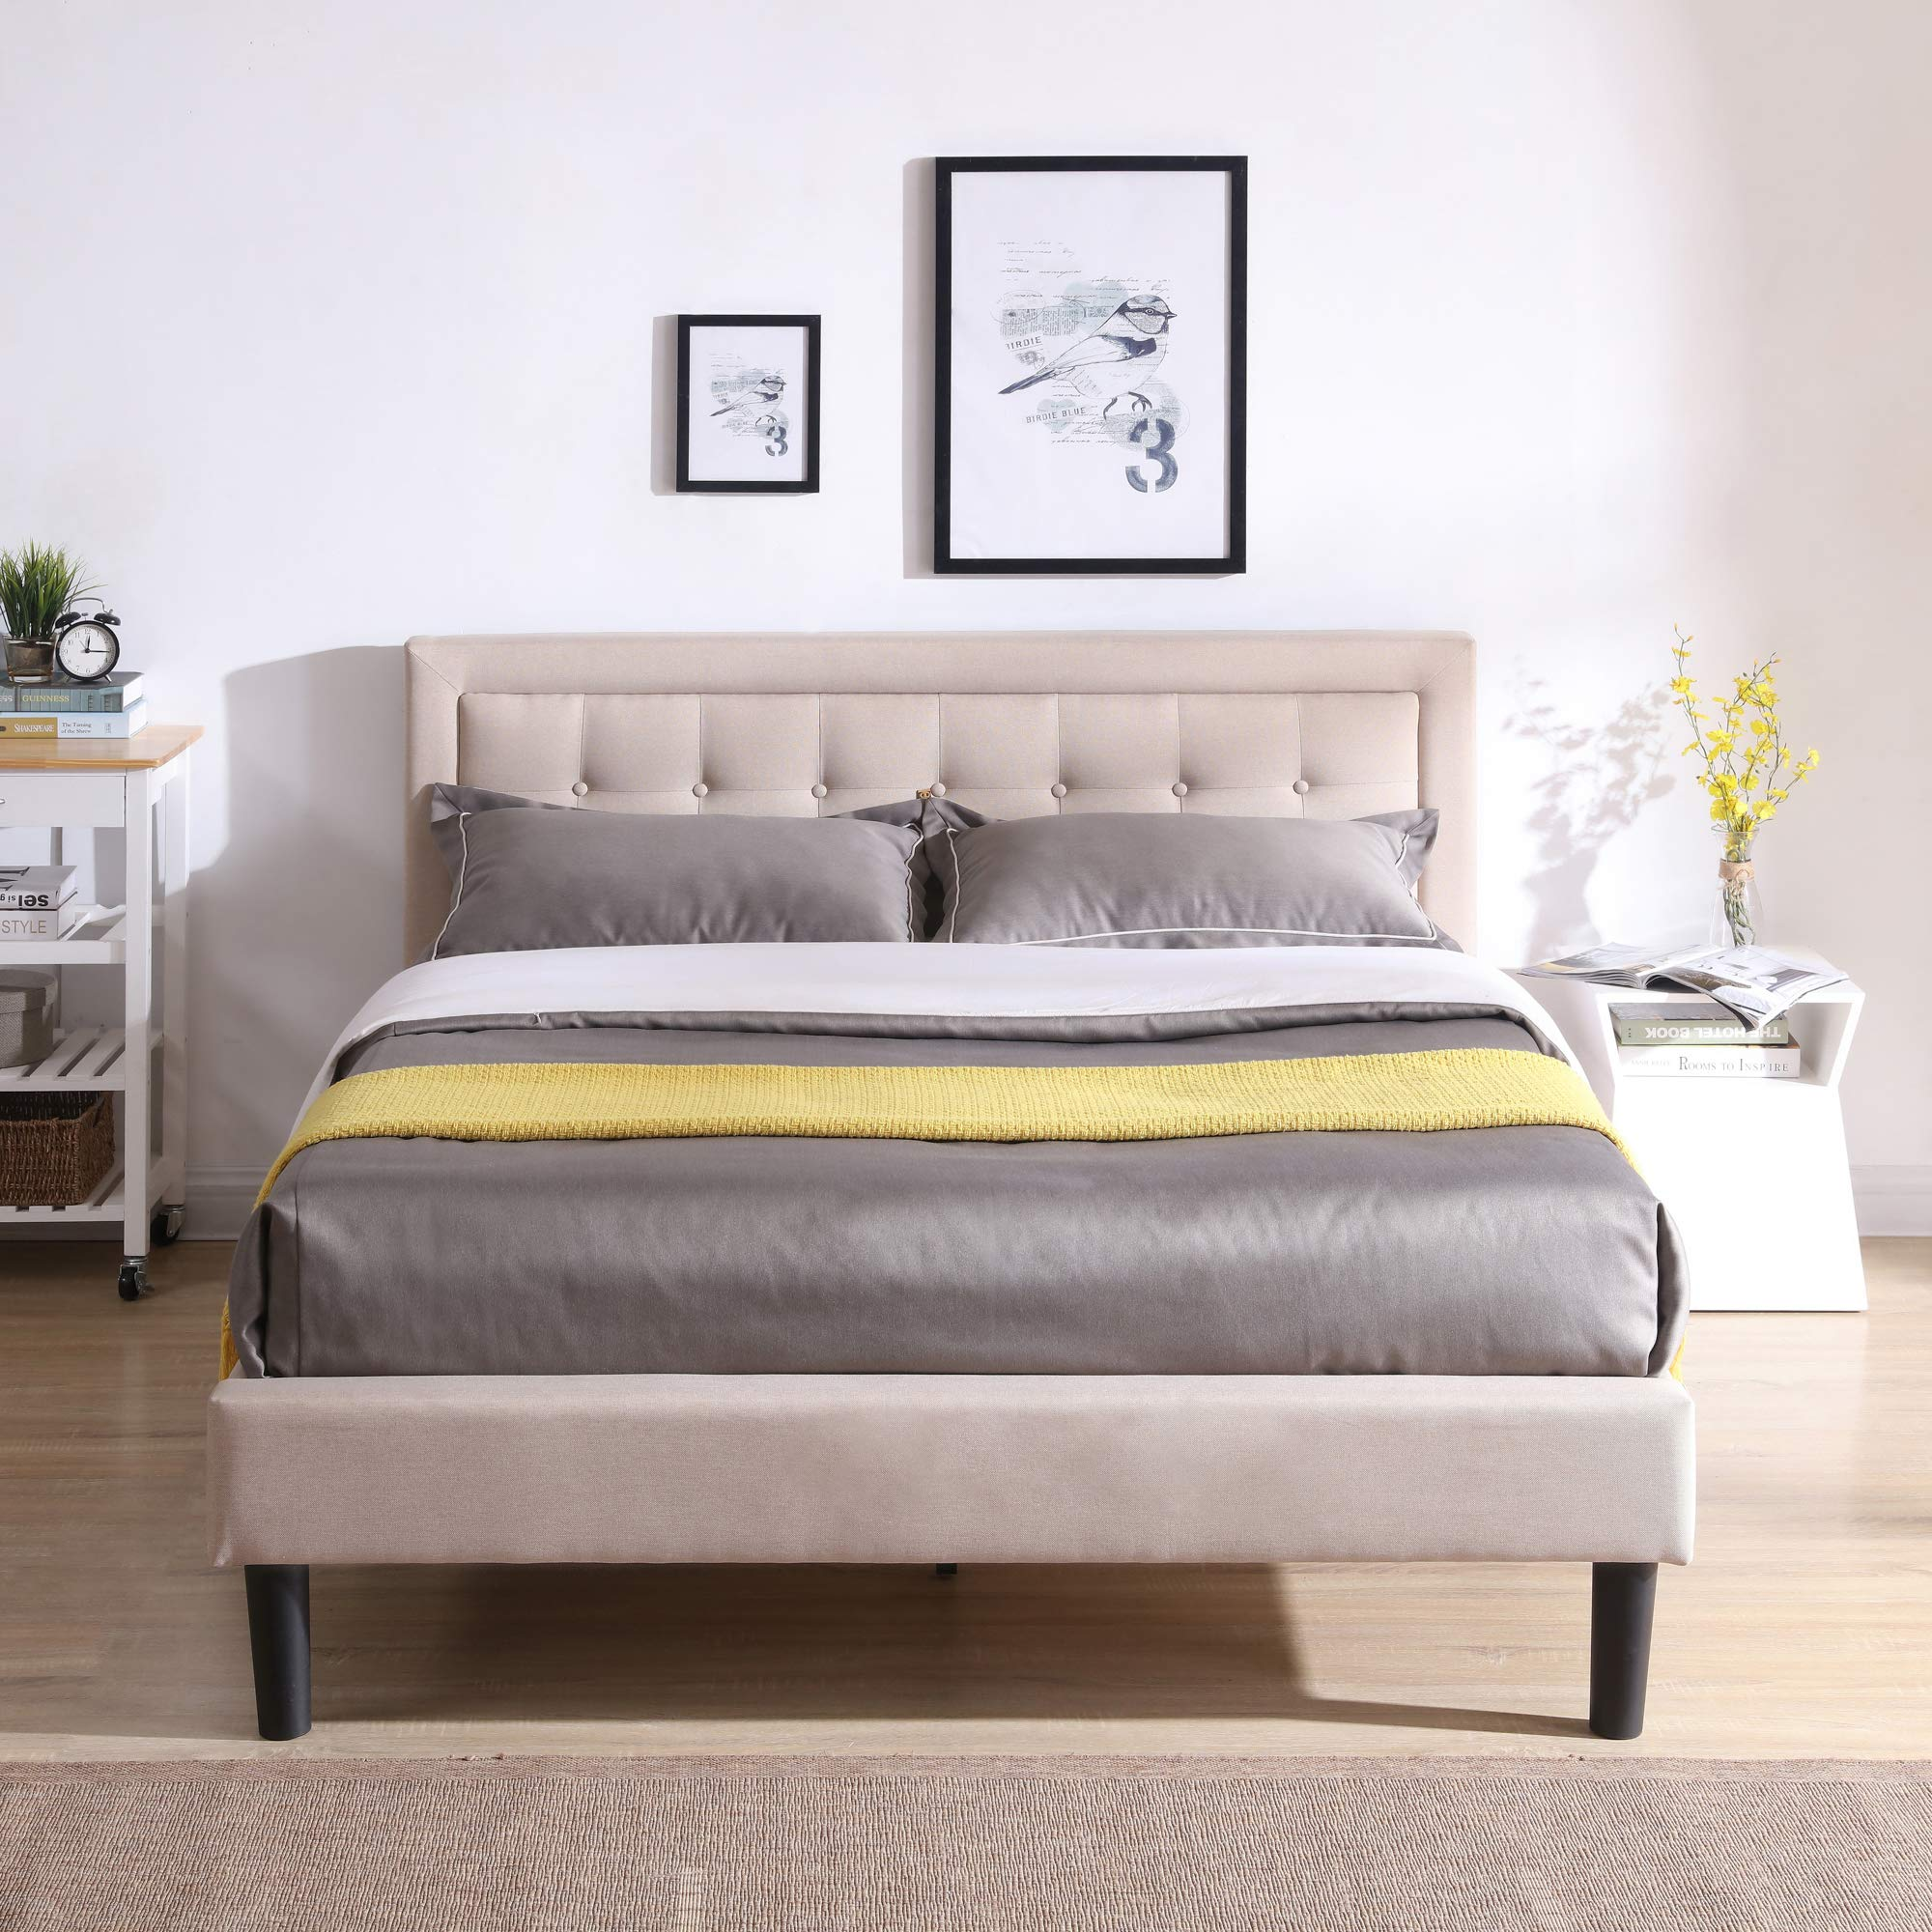 Mornington Upholstered Platform Bed | Headboard and Metal Frame with Wood Slat Support | Linen, Queen by Classic Brands